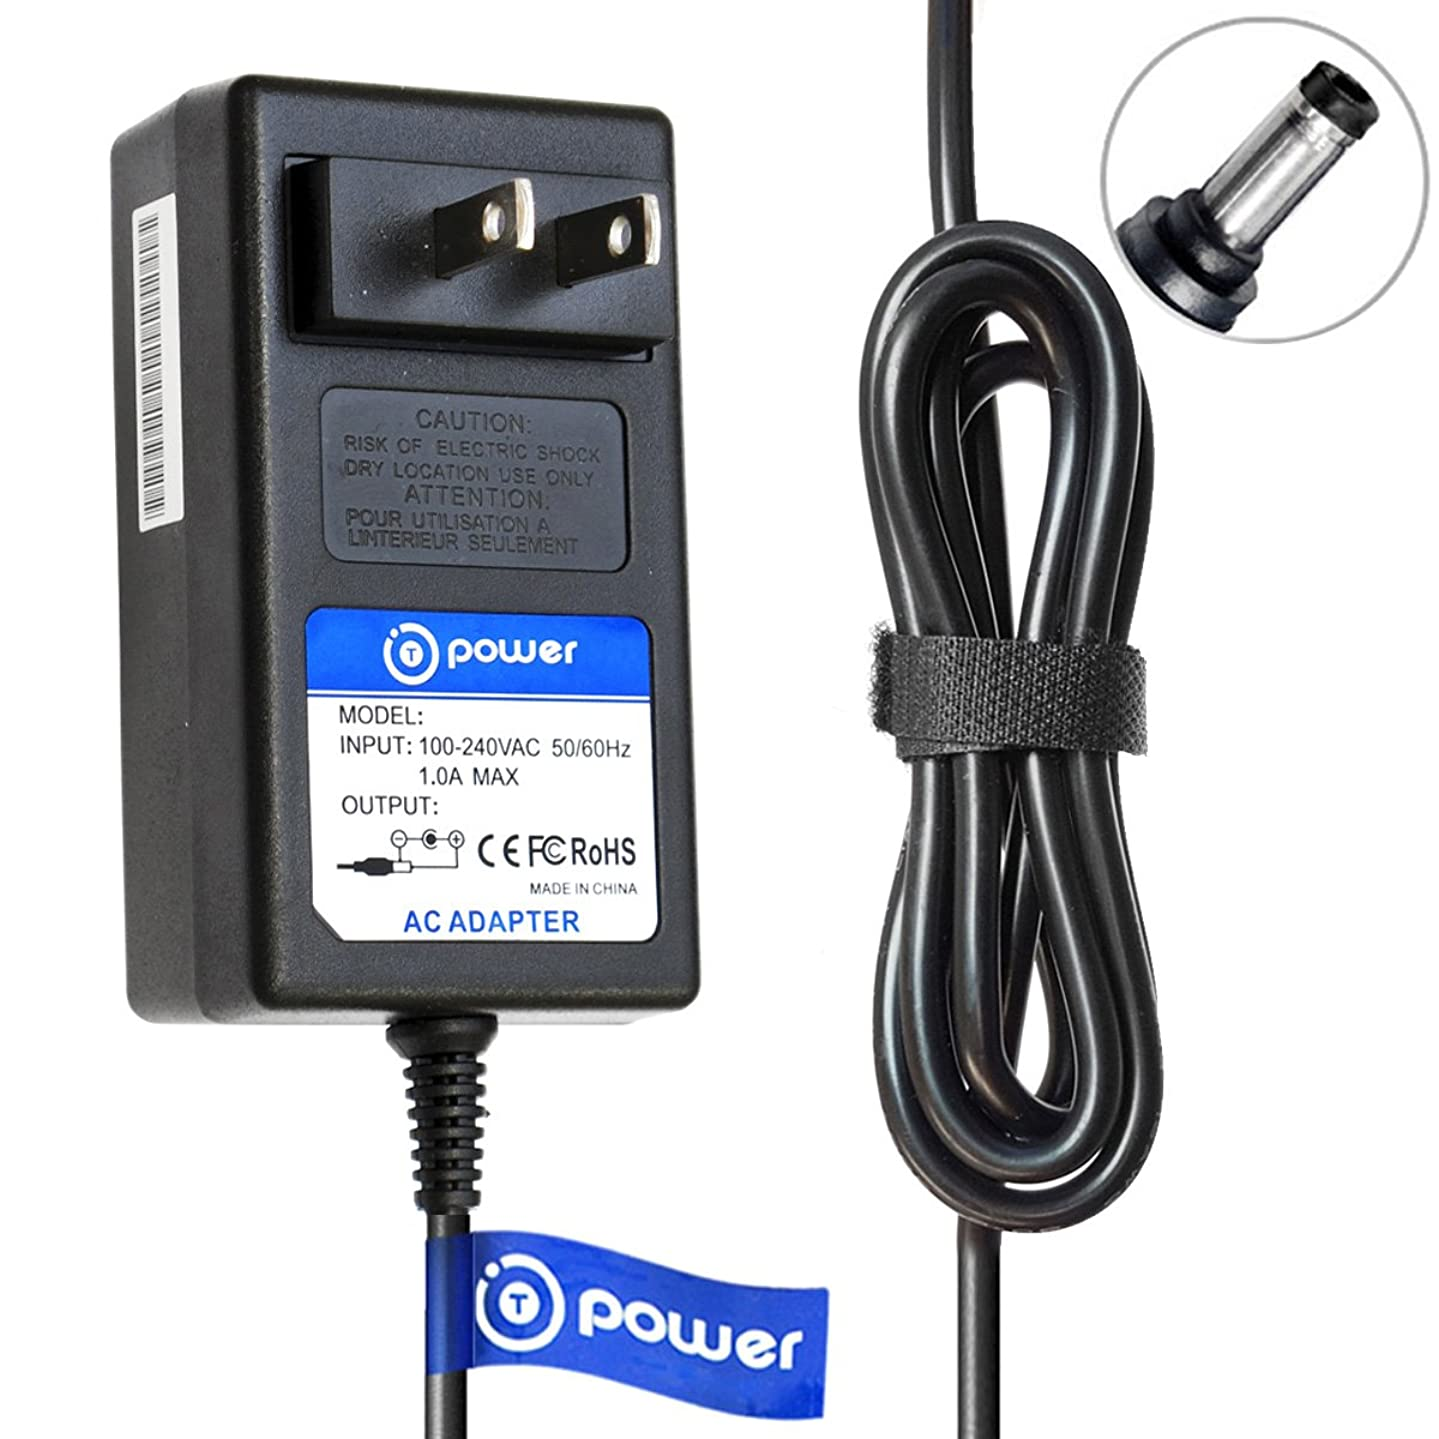 T-Power (6.6ft Long Cable) Ac Dc Adapter Compatible with Yamaha PSR170 PSR-275 PSR-260 PSR260 P,N: PSR170 PSR-275 PSR-260 PSR260 Electronic Digital Piano Midi Keyboard Spare Charger Power Plug Cord